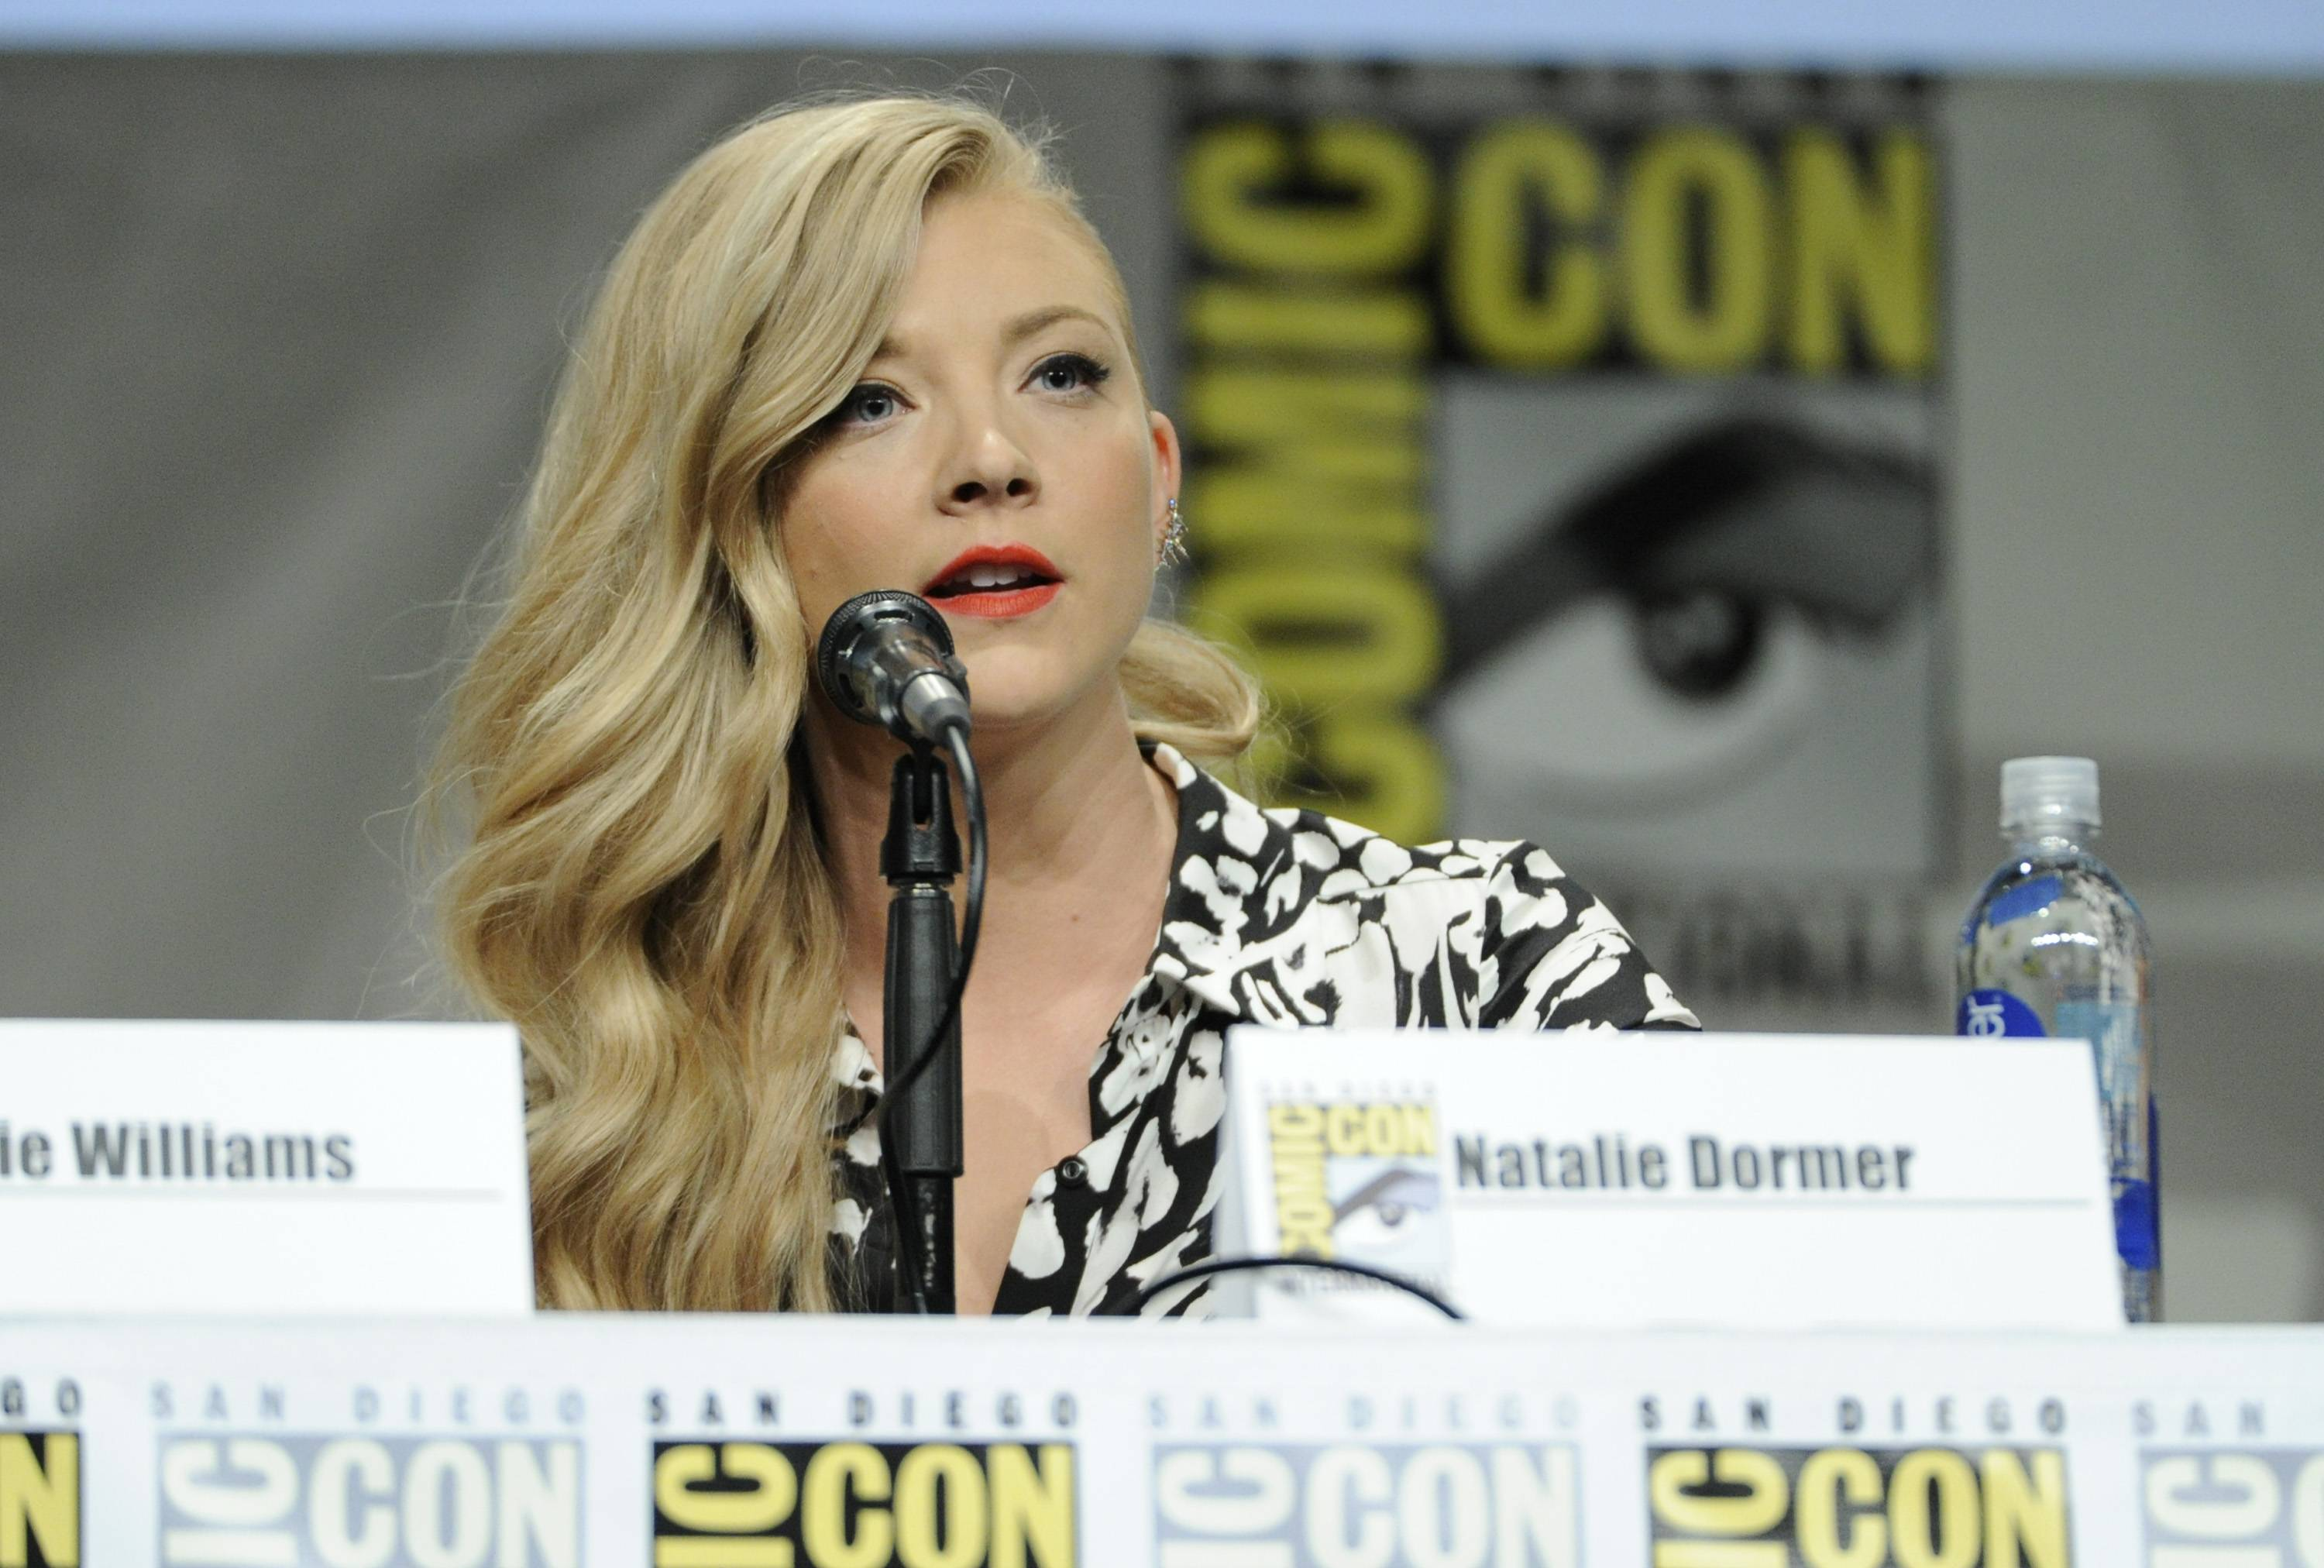 Natalie Dormer attends an Entertainment Weekly panel on Day 3 of Comic-Con International on Saturday.